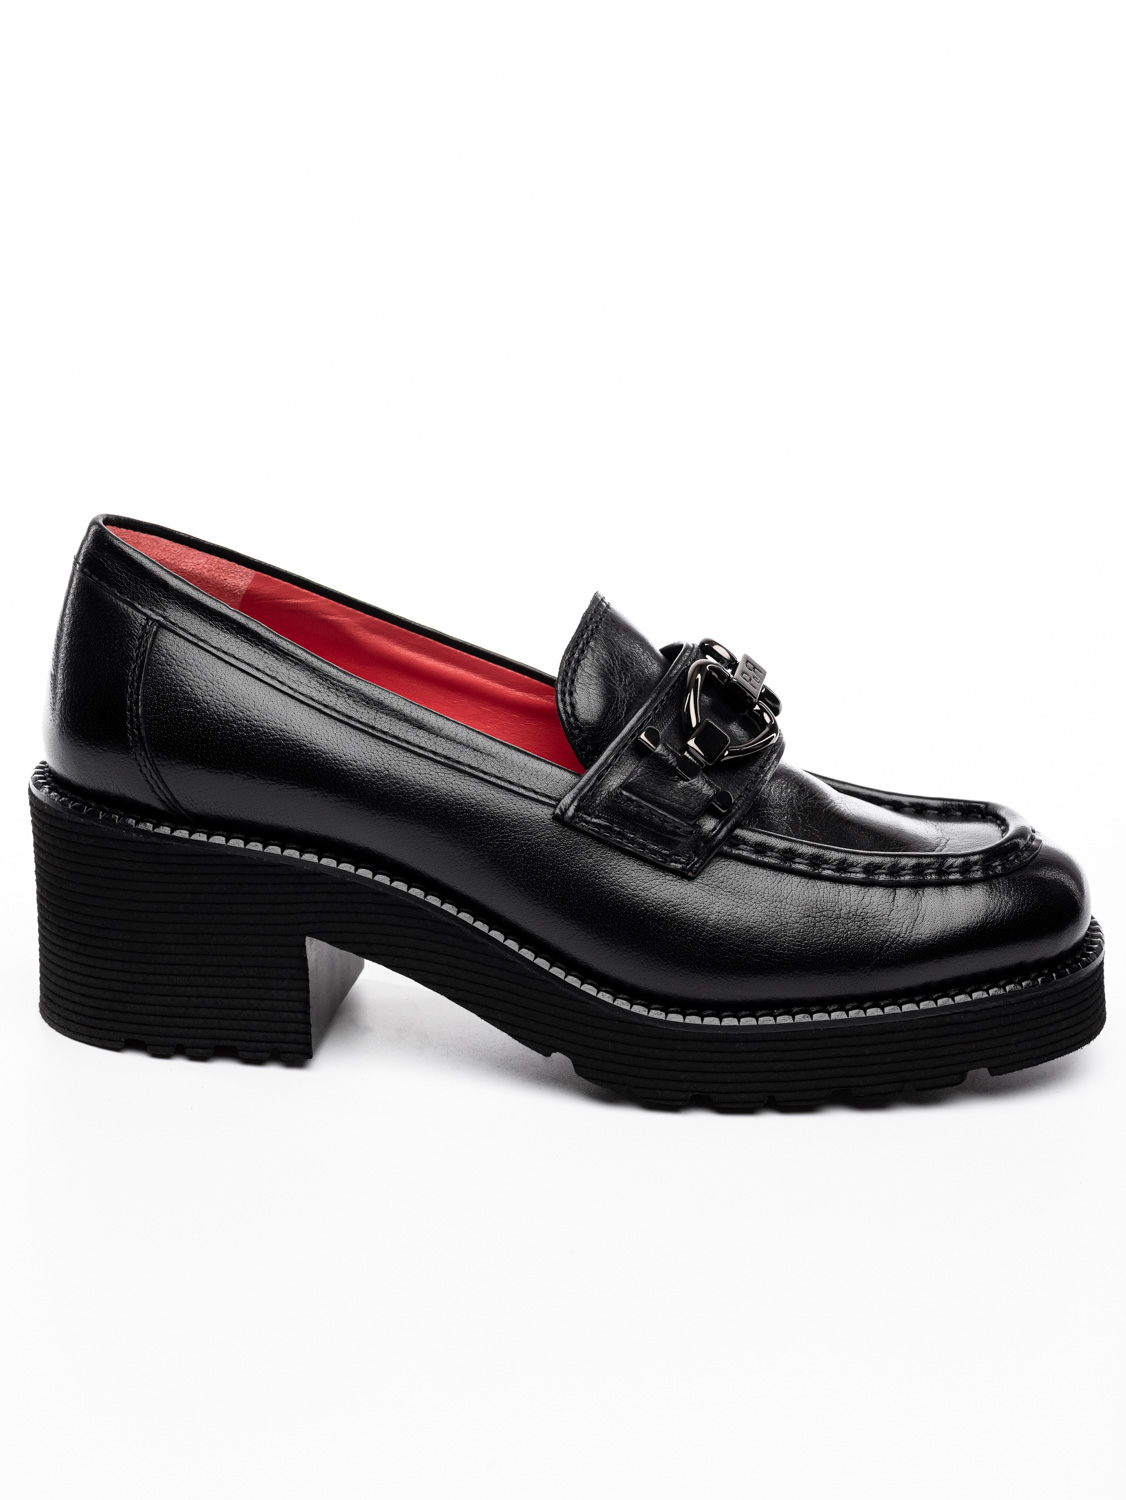 SALMA Δερμάτινα Loafers Με Τακούνι